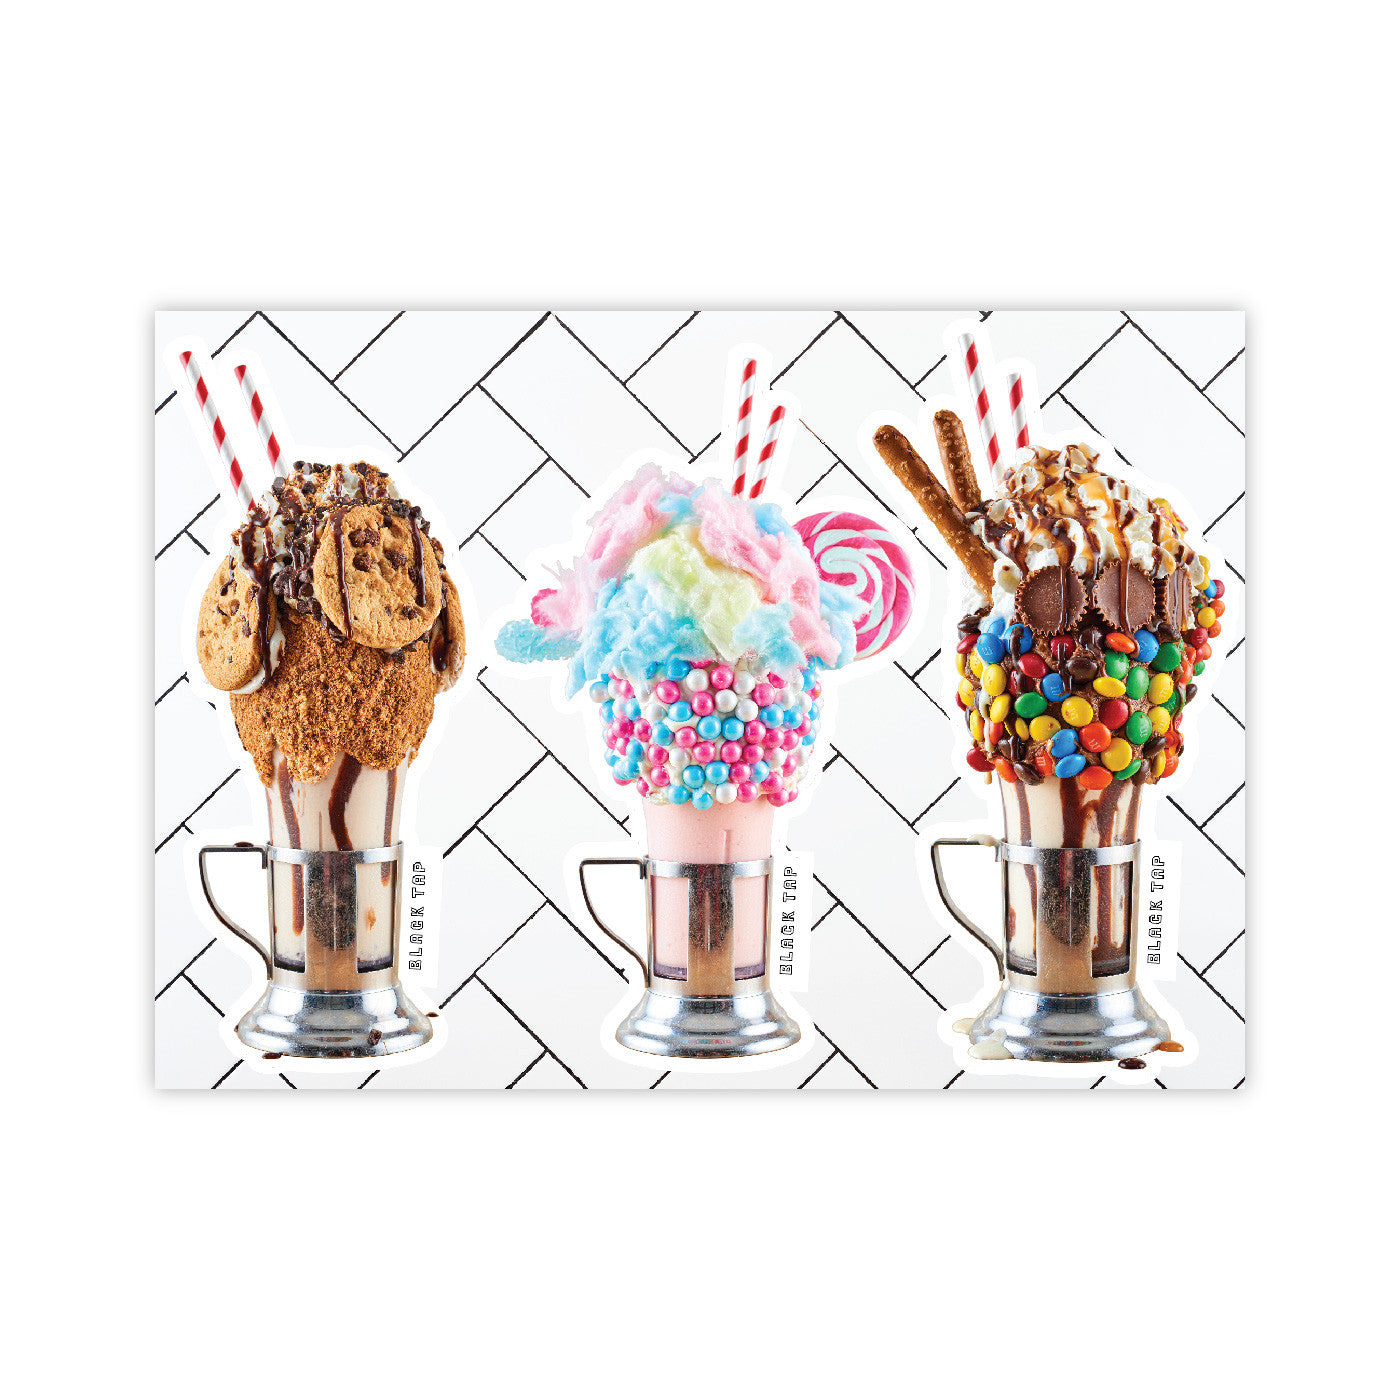 3 cut out stickers of our cookie, cotton candy, and sweet and salty crazyshake milkshakes